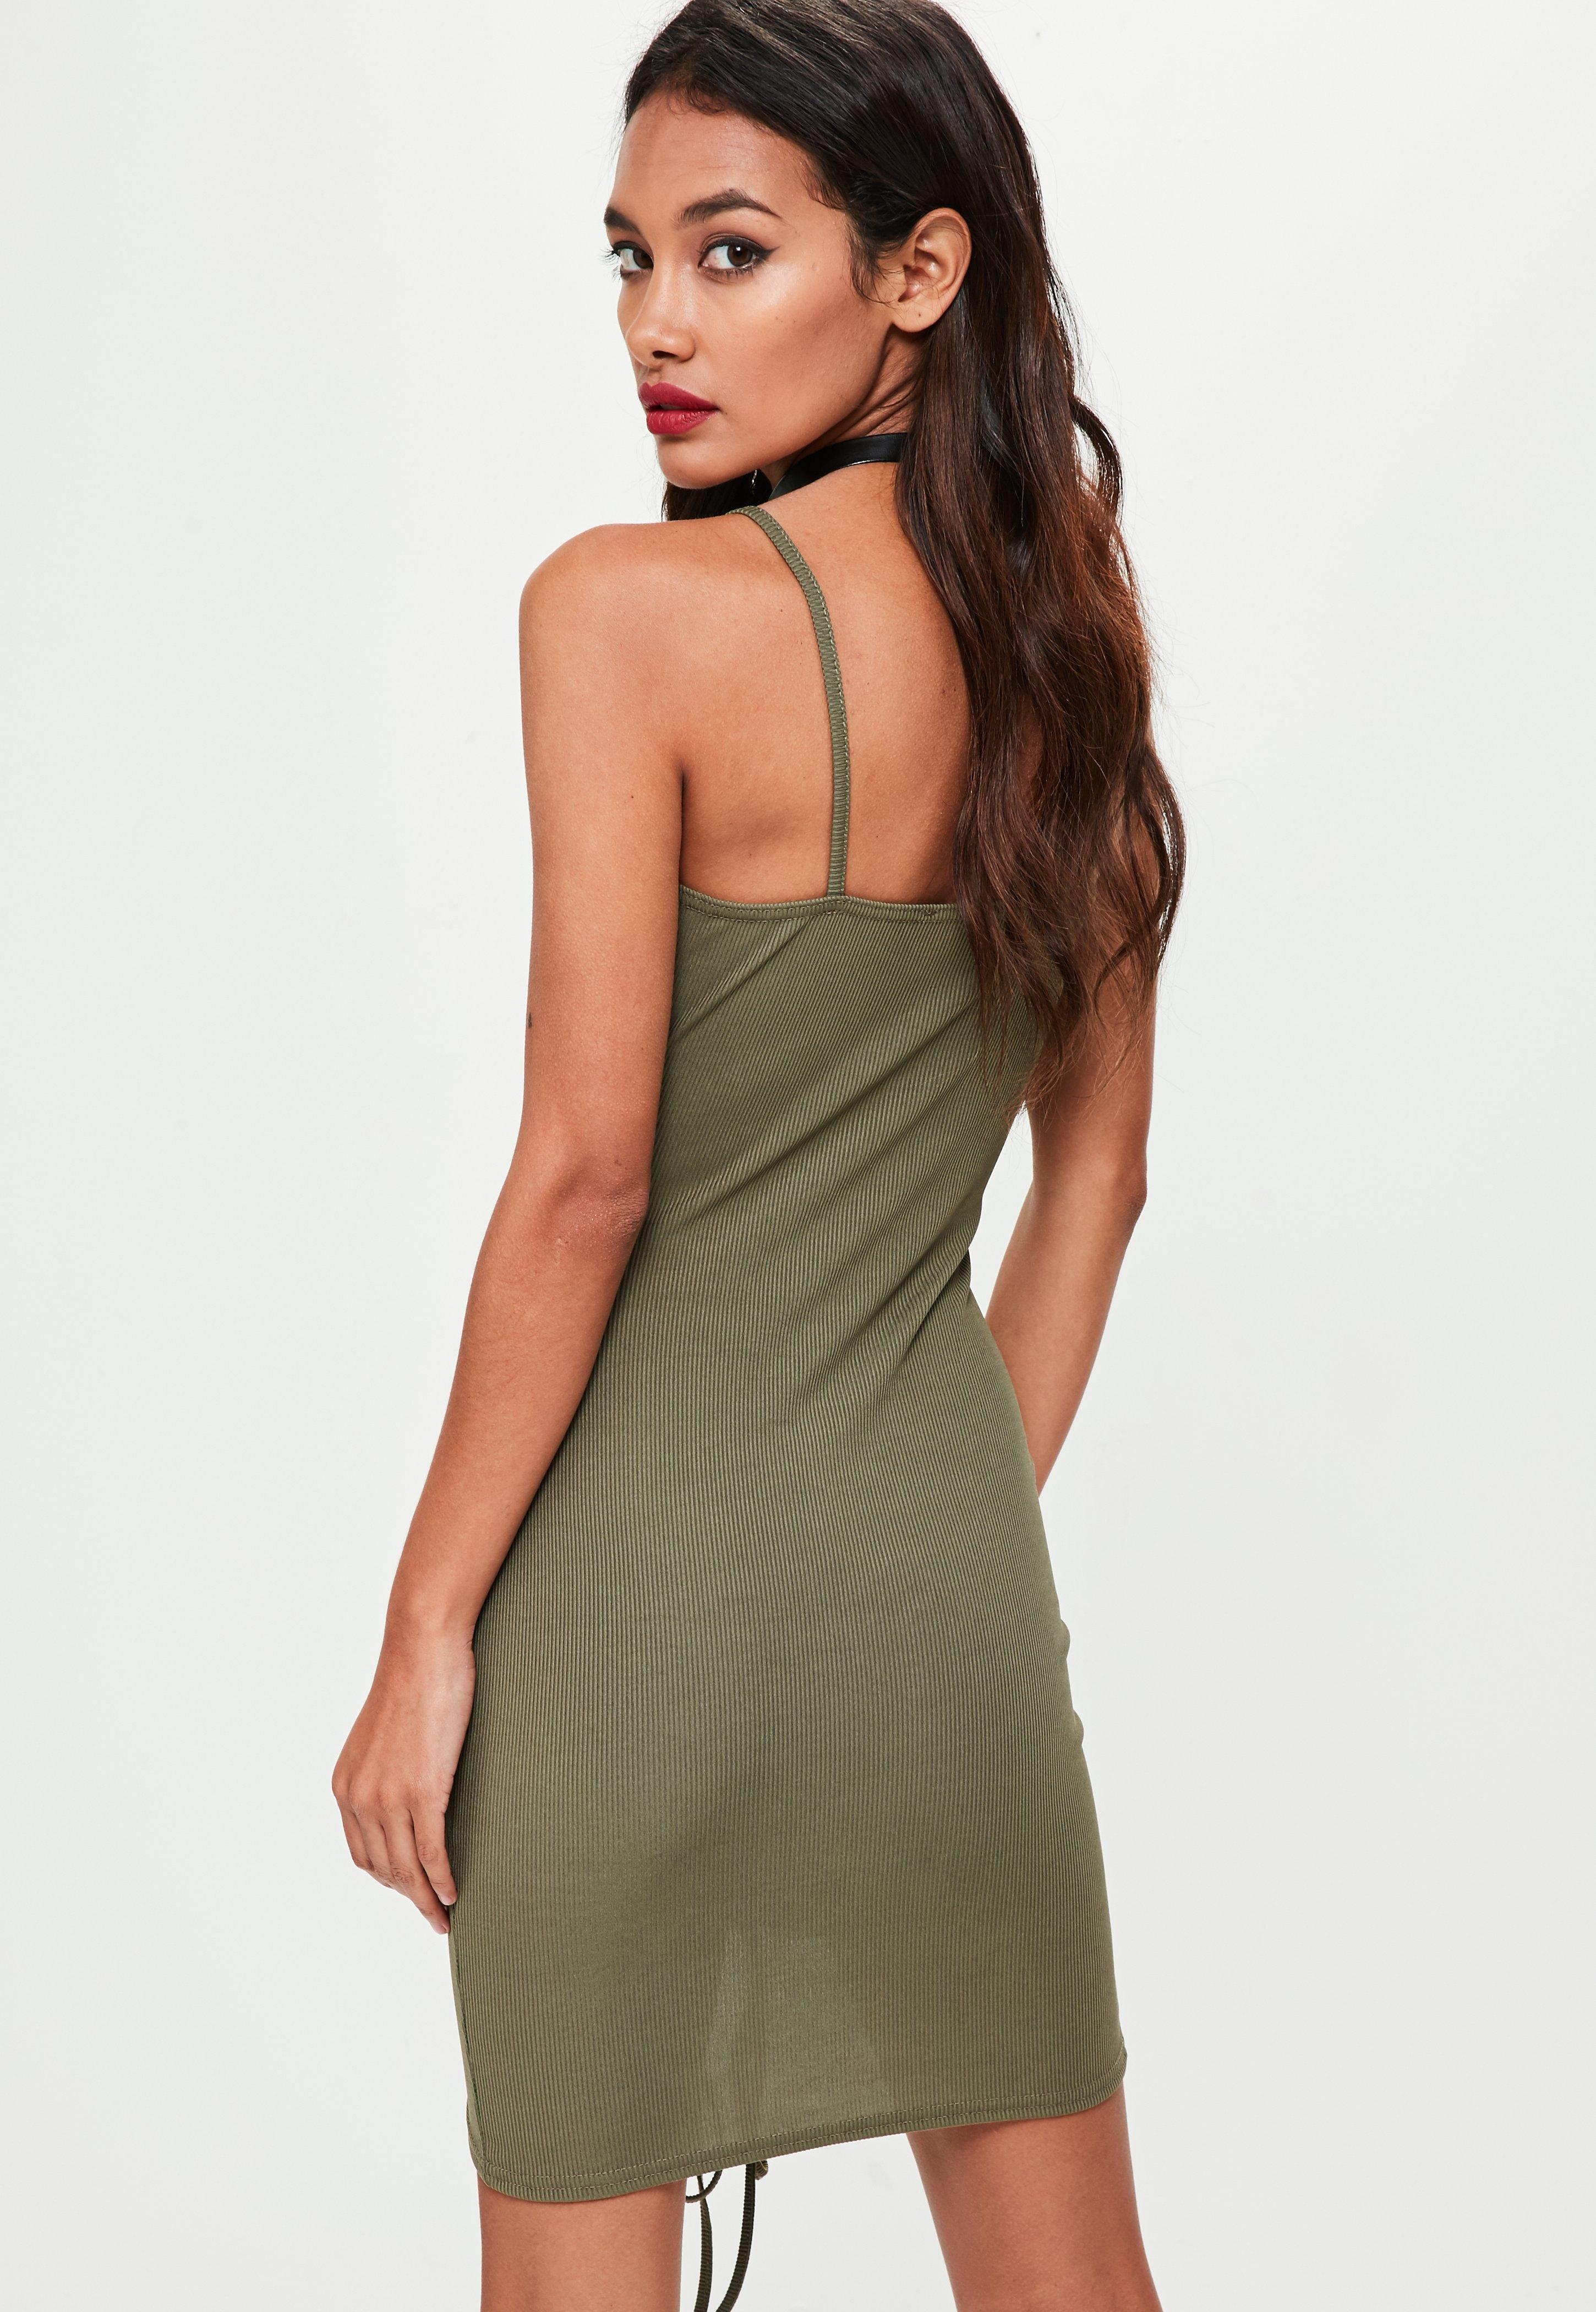 Missguided Khaki Ribbed Strappy Lace Up Bodycon Dress Largest Supplier Sale Online L2pczCjAl